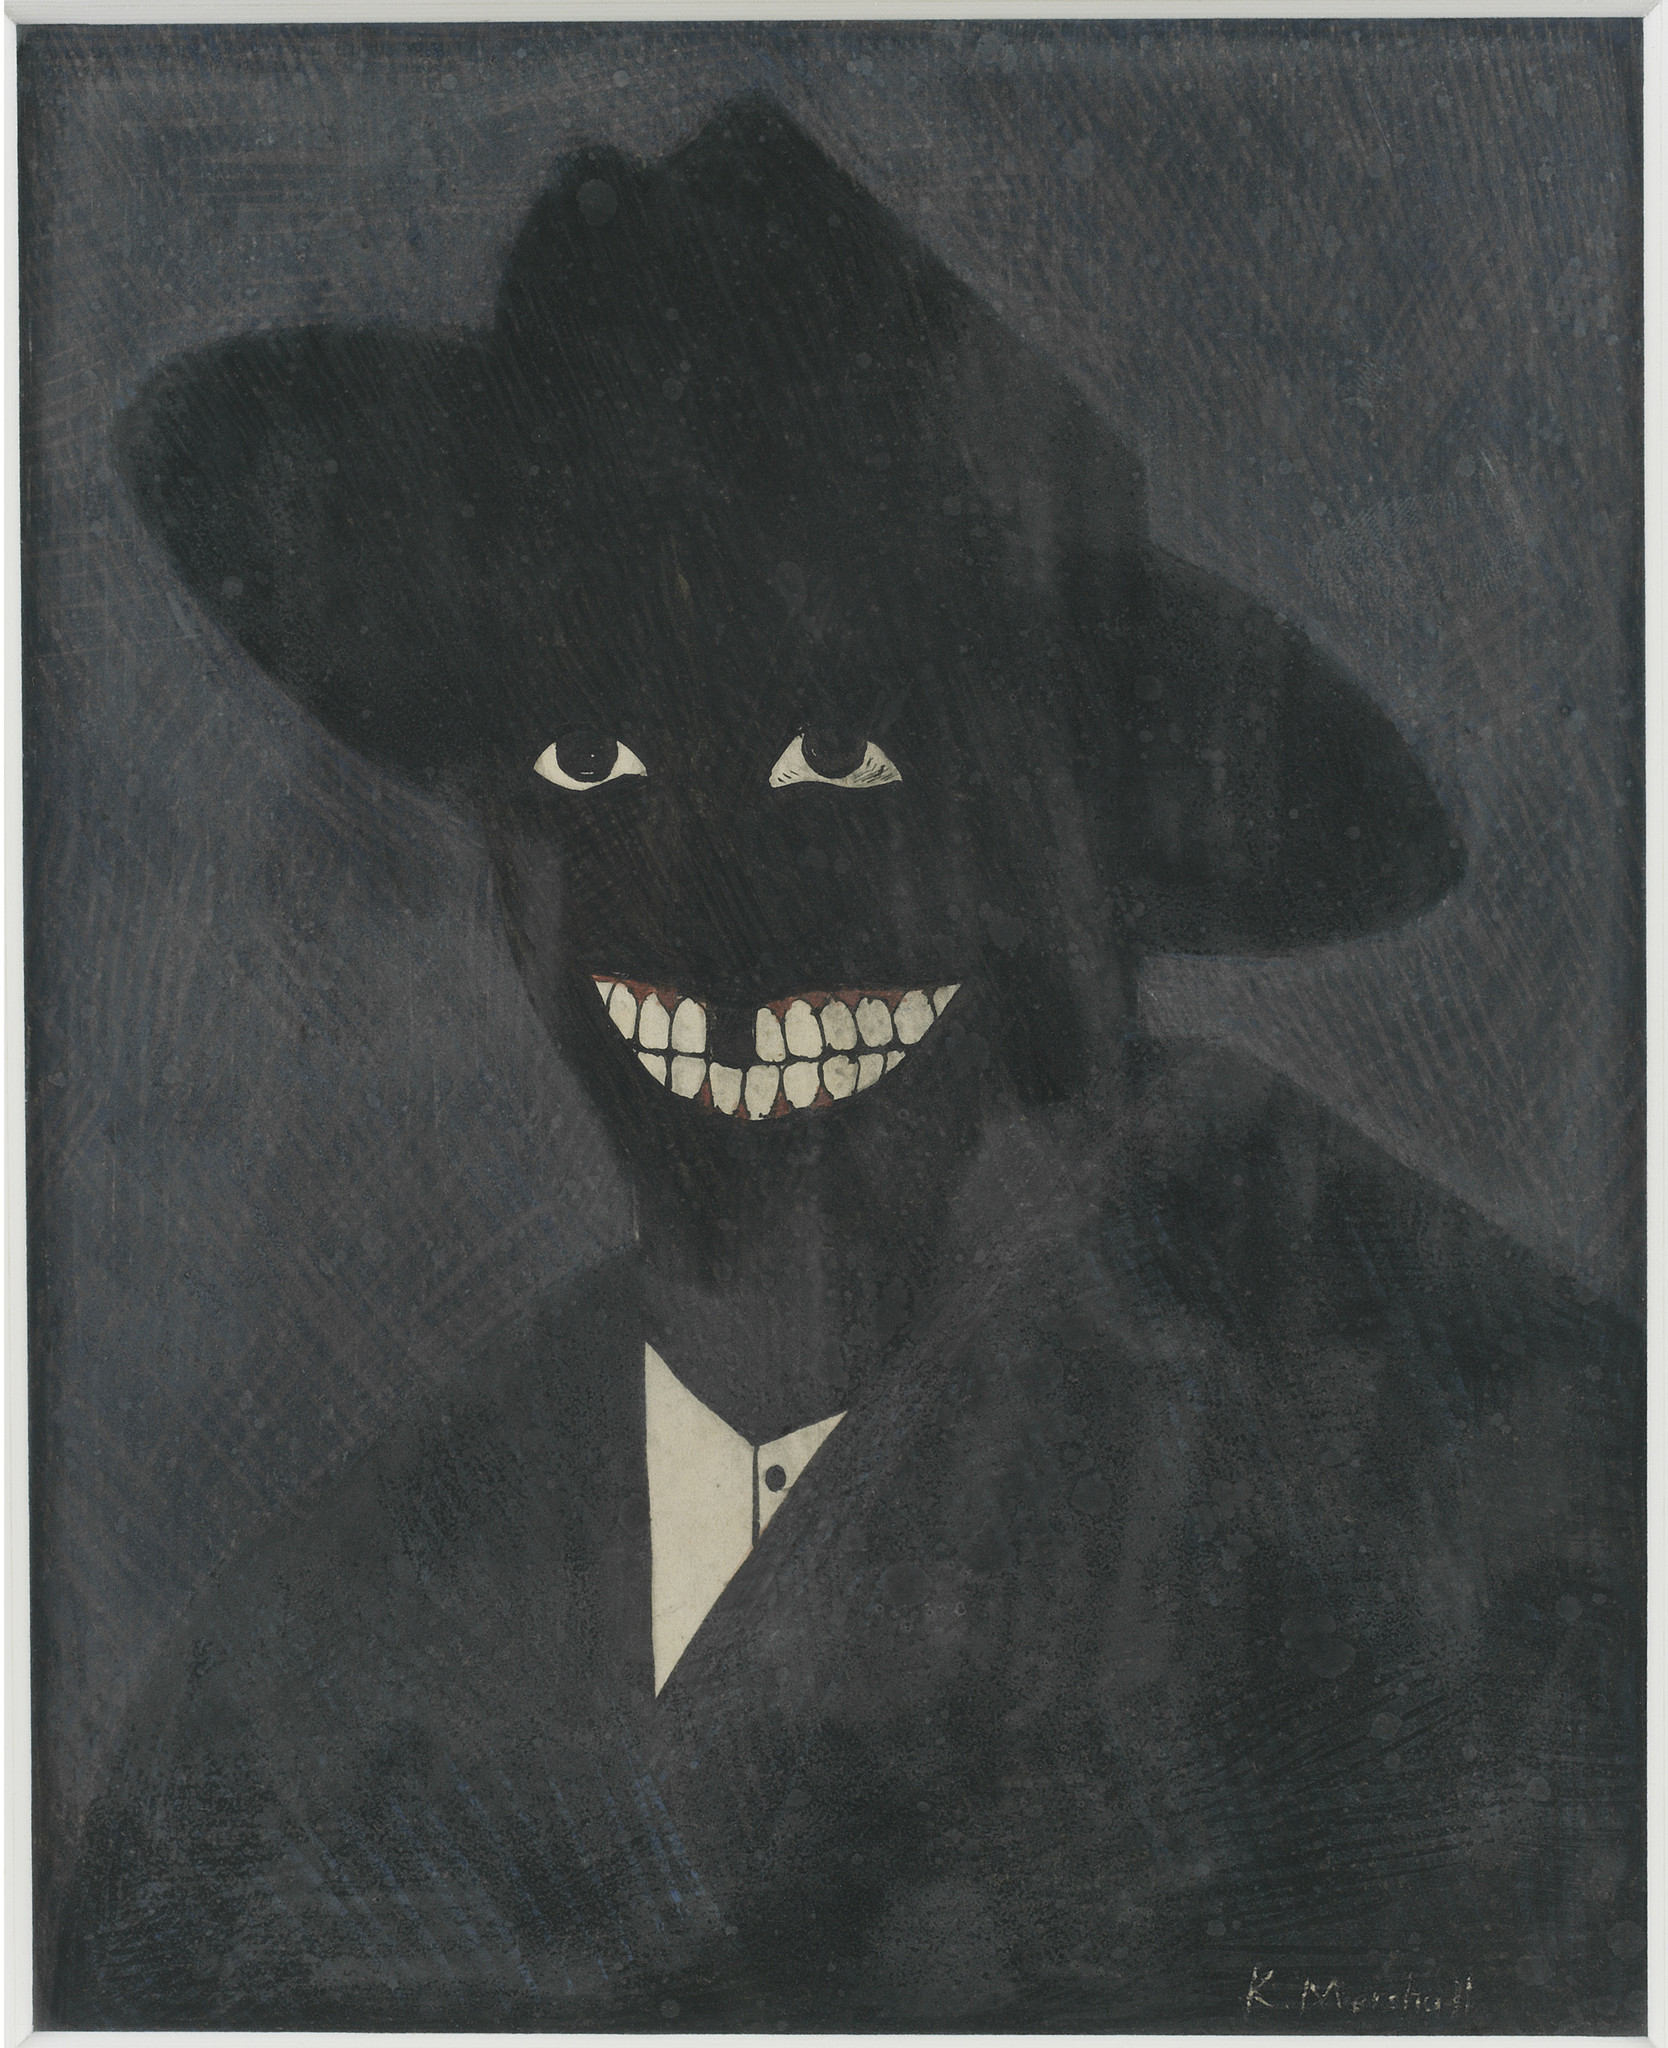 """Kerry James Marshall's """"Portrait of the Artist as a Shadow of His Former Self"""""""